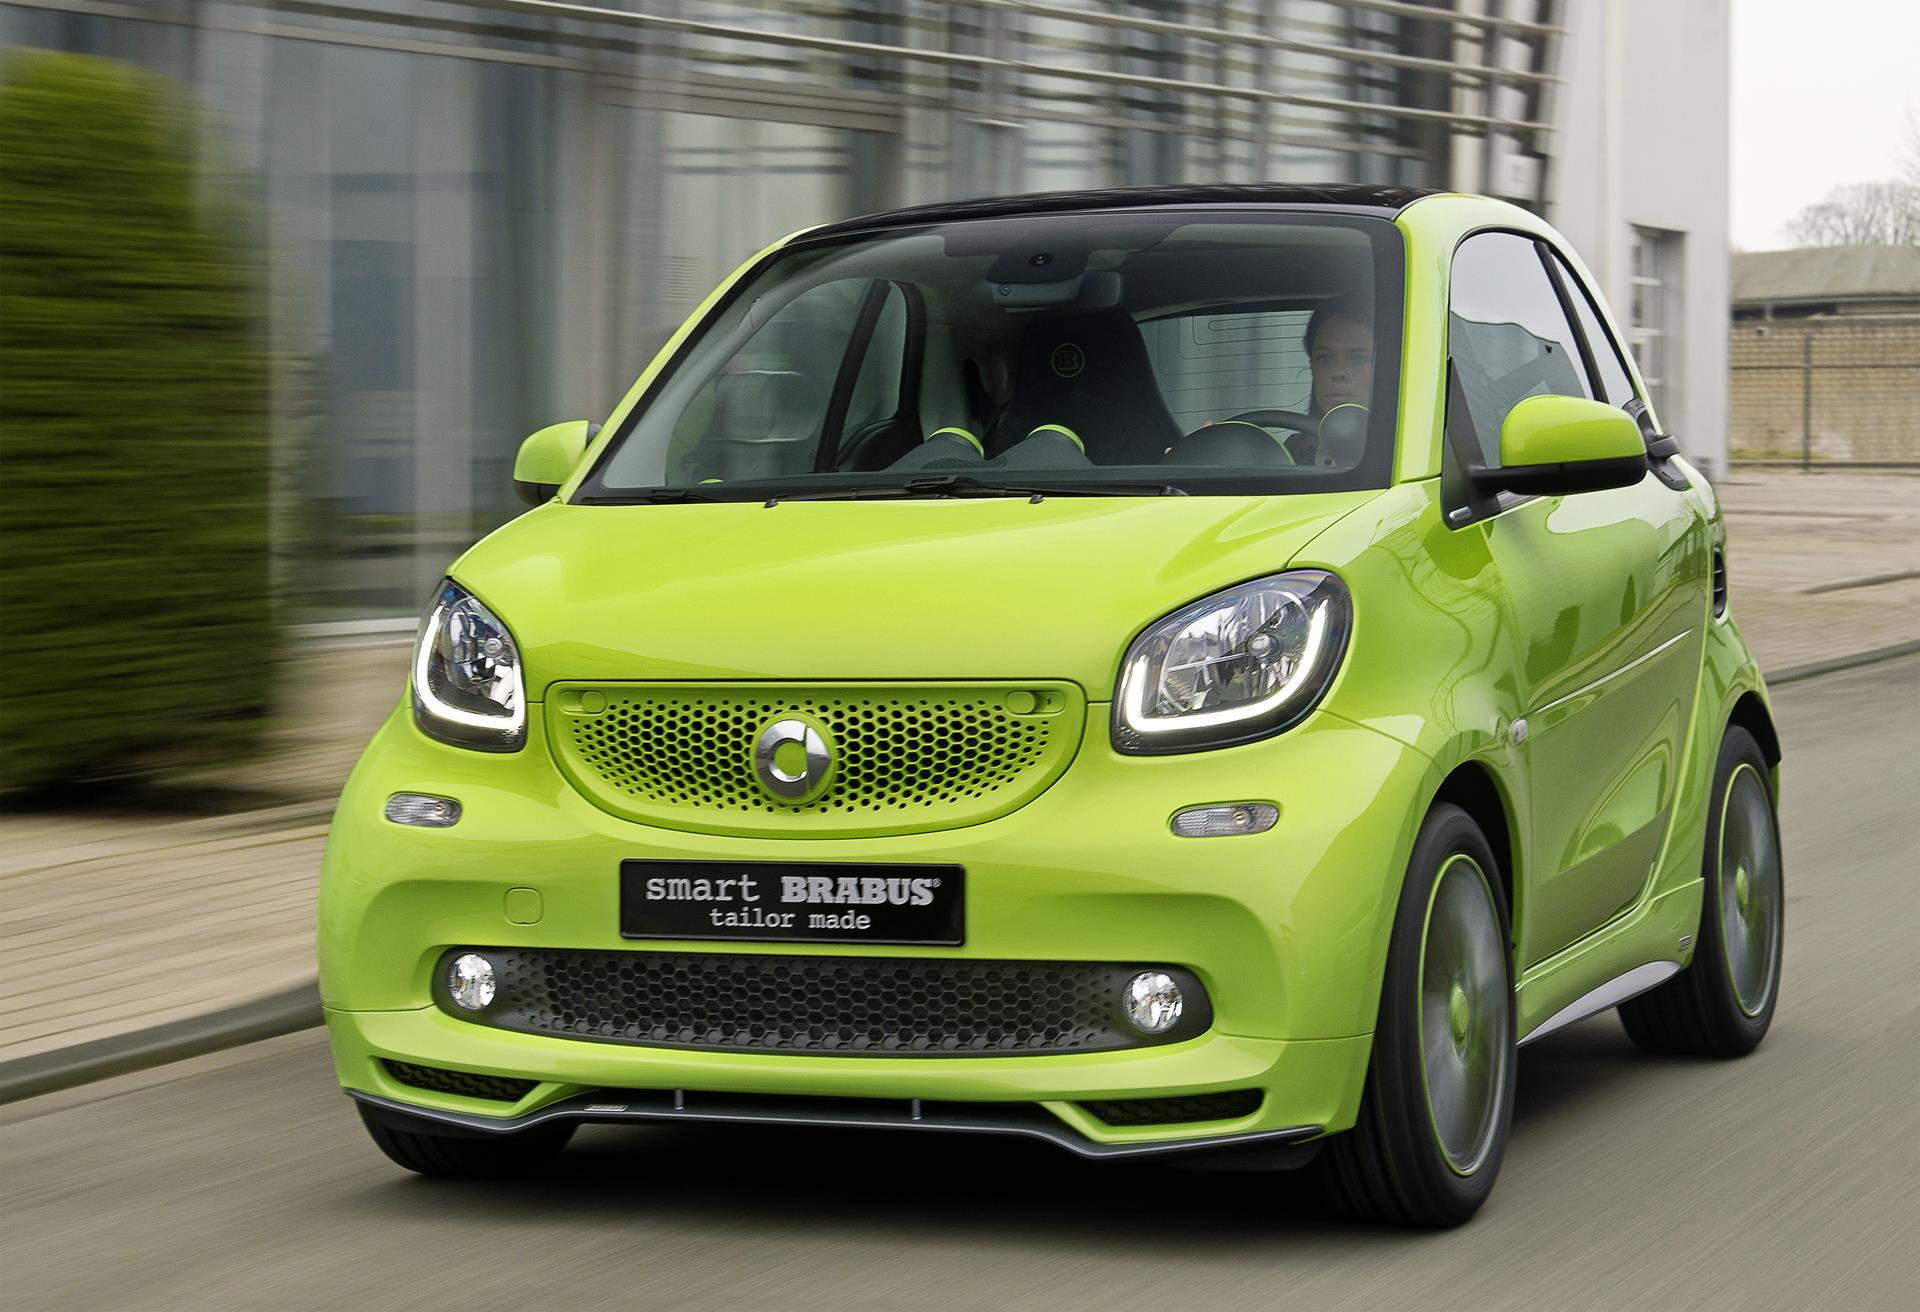 2015 brabus fortwo technical specifications and data engine dimensions and mechanical details. Black Bedroom Furniture Sets. Home Design Ideas